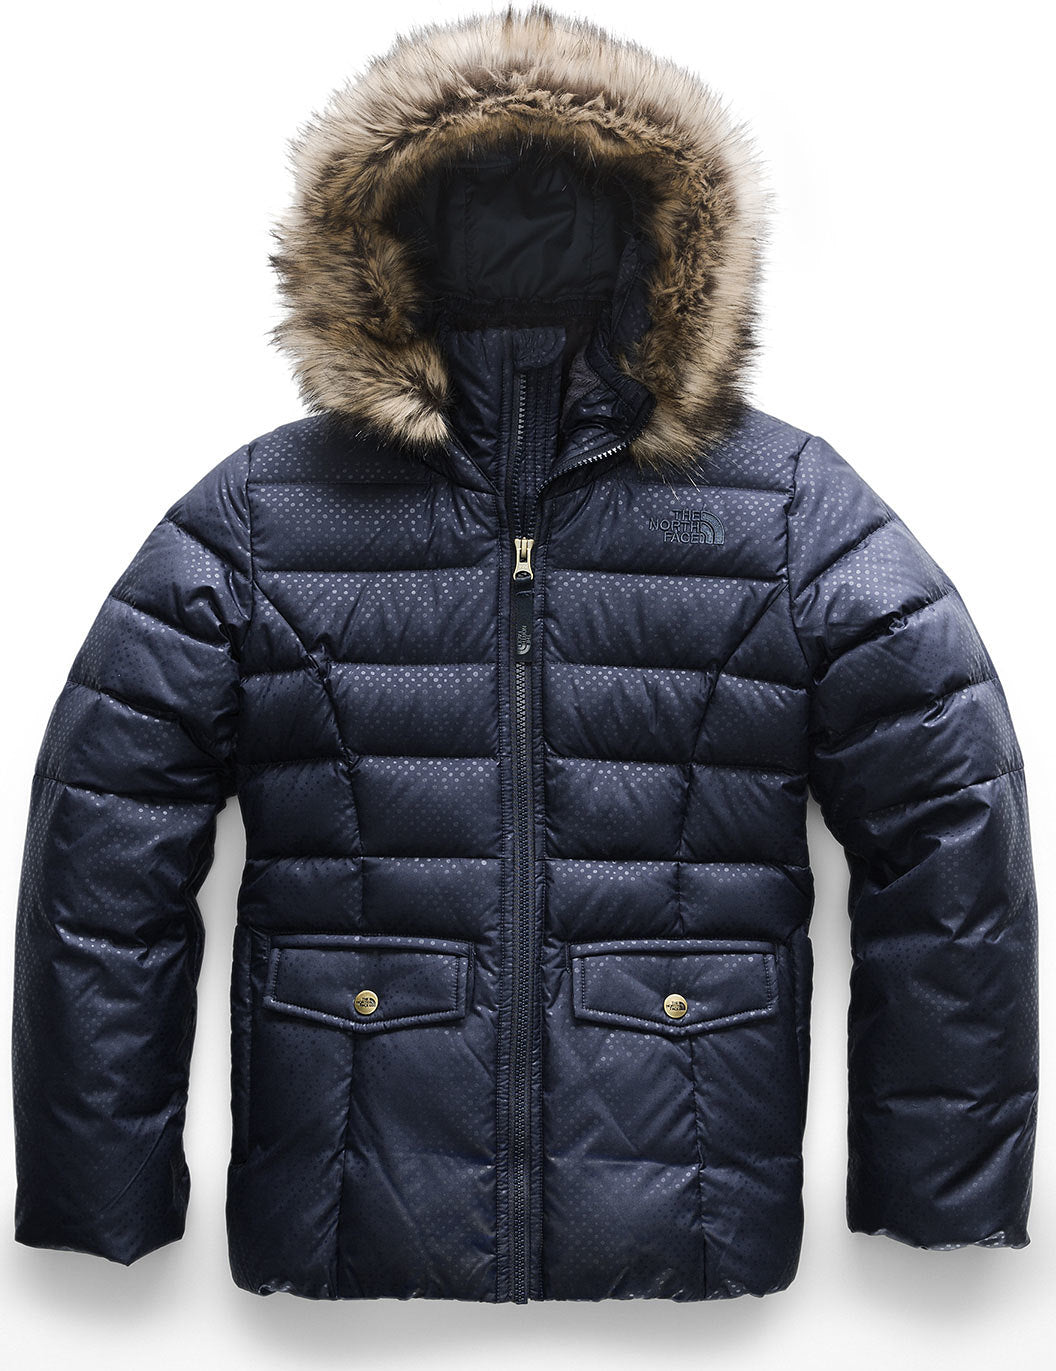 520d9538b7b The North Face Girl's Gotham 2.0 Down Jacket